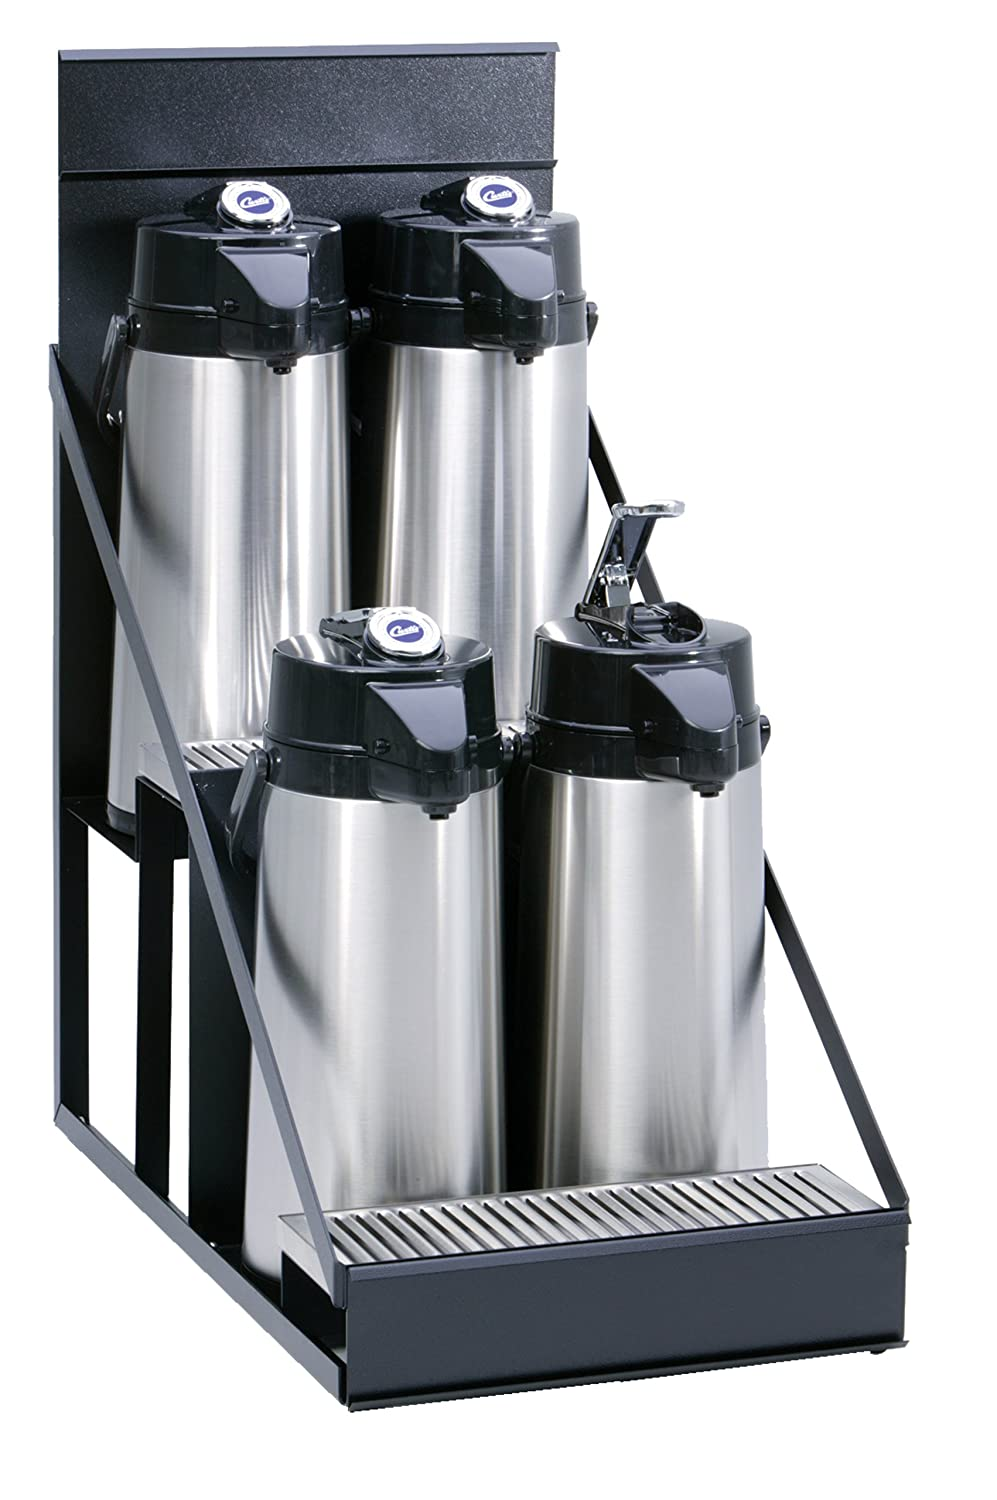 WR3B0000 Compact Design with Integral Drip Tray Wilbur Curtis  3 Position Wire Airpot Rack Pack of 3